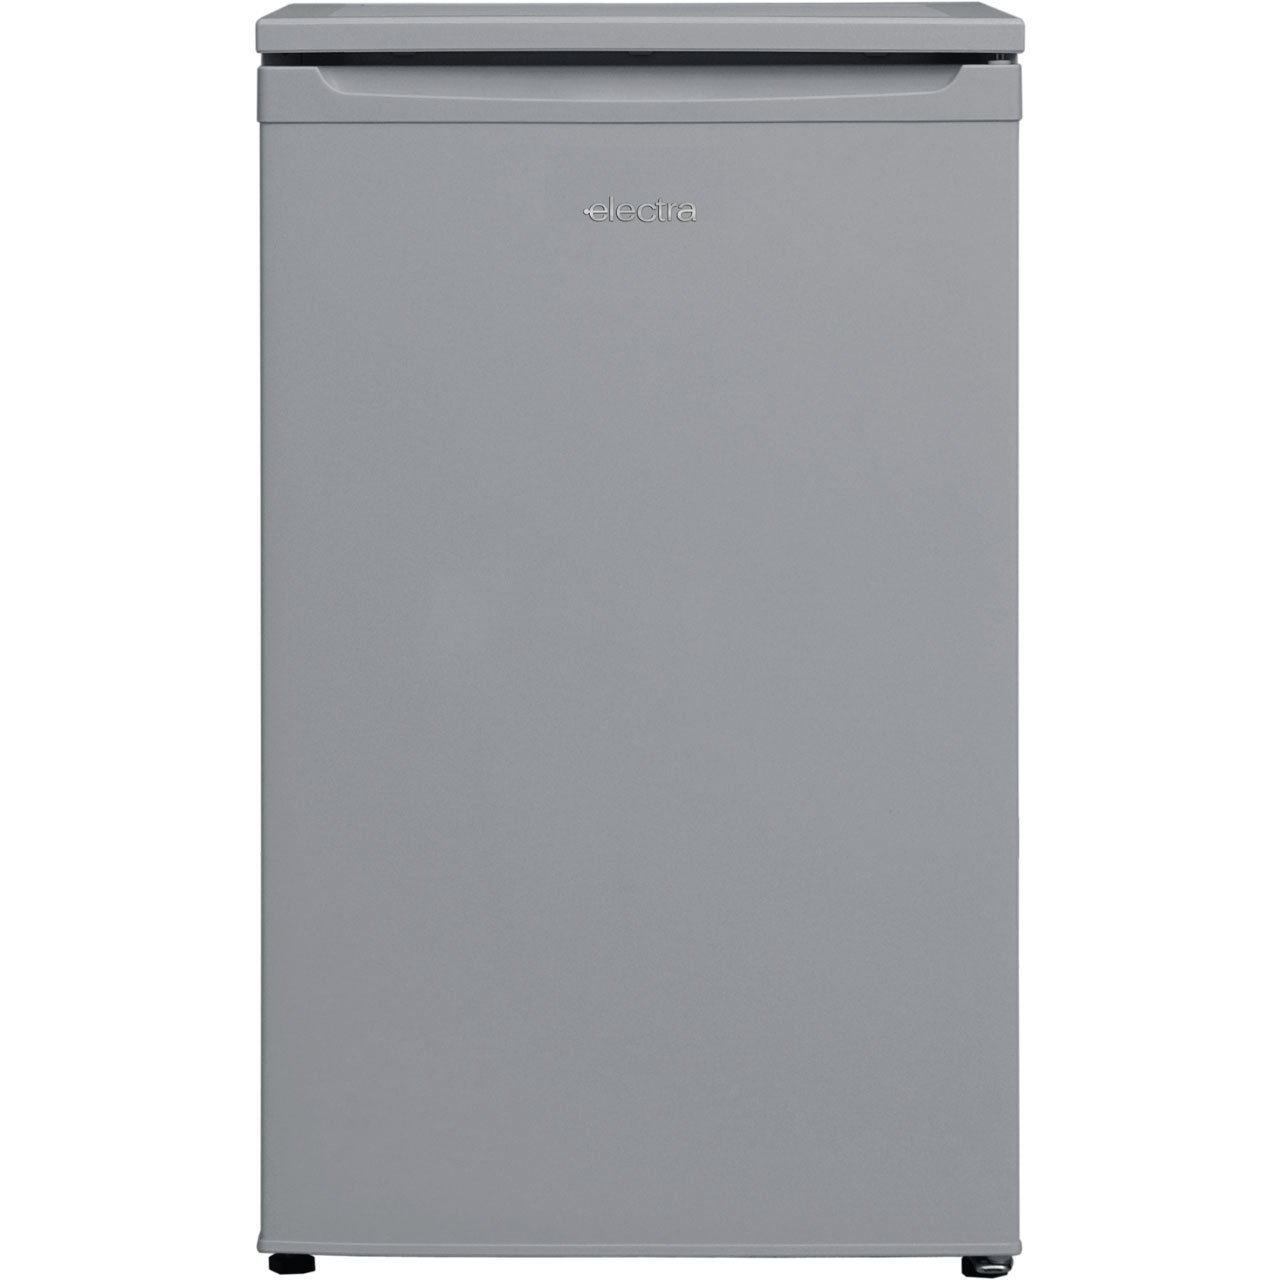 Electra EFUZ48S Freestanding A+ Rated Freezer in Silver Vestel